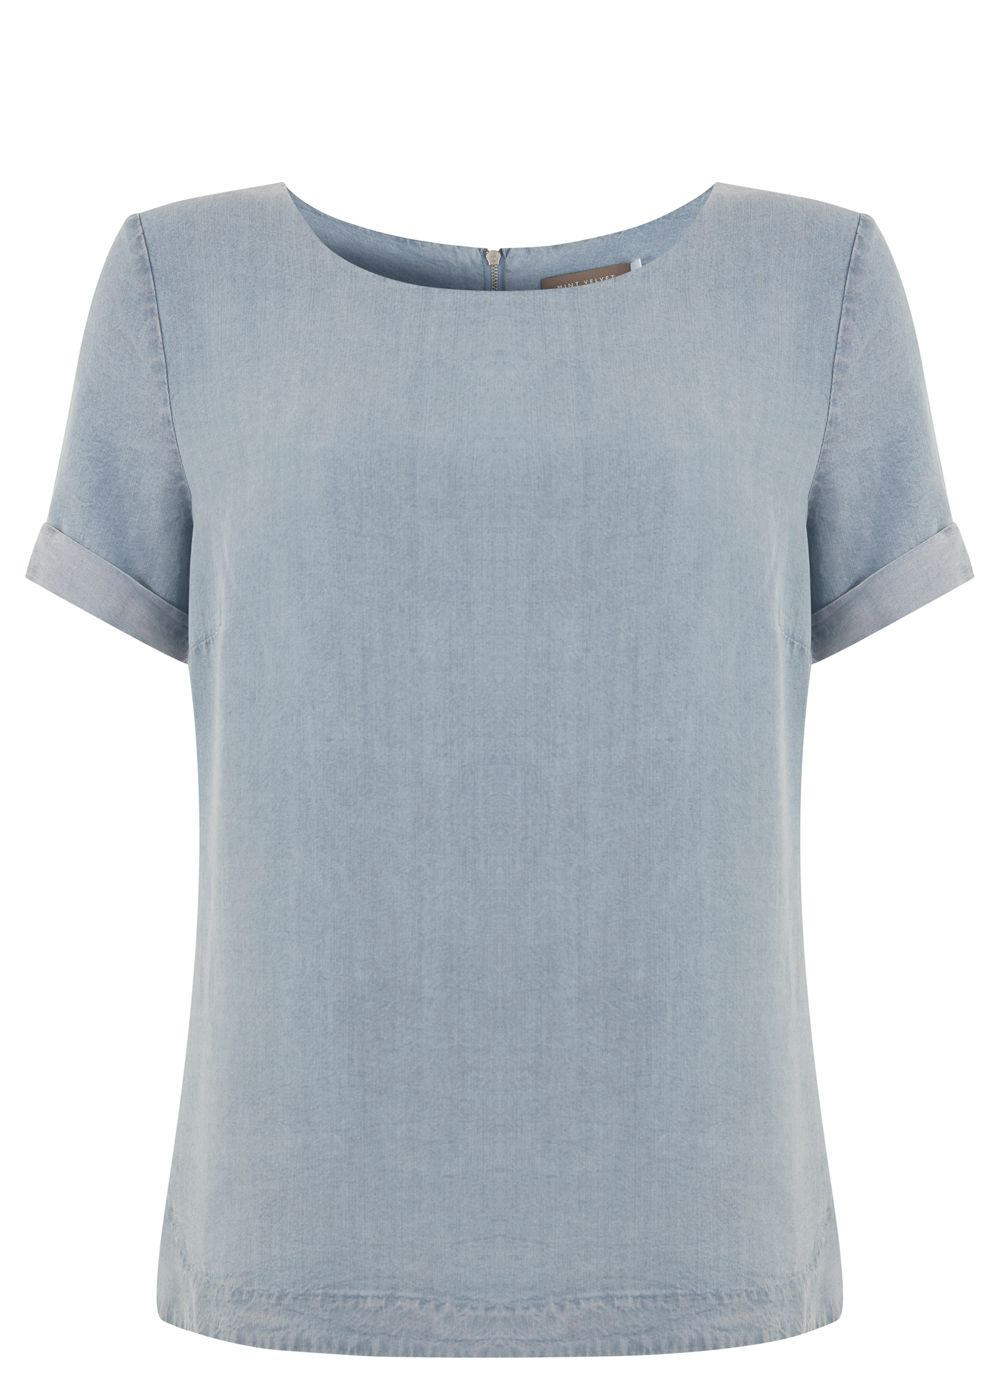 Light denim tshirt